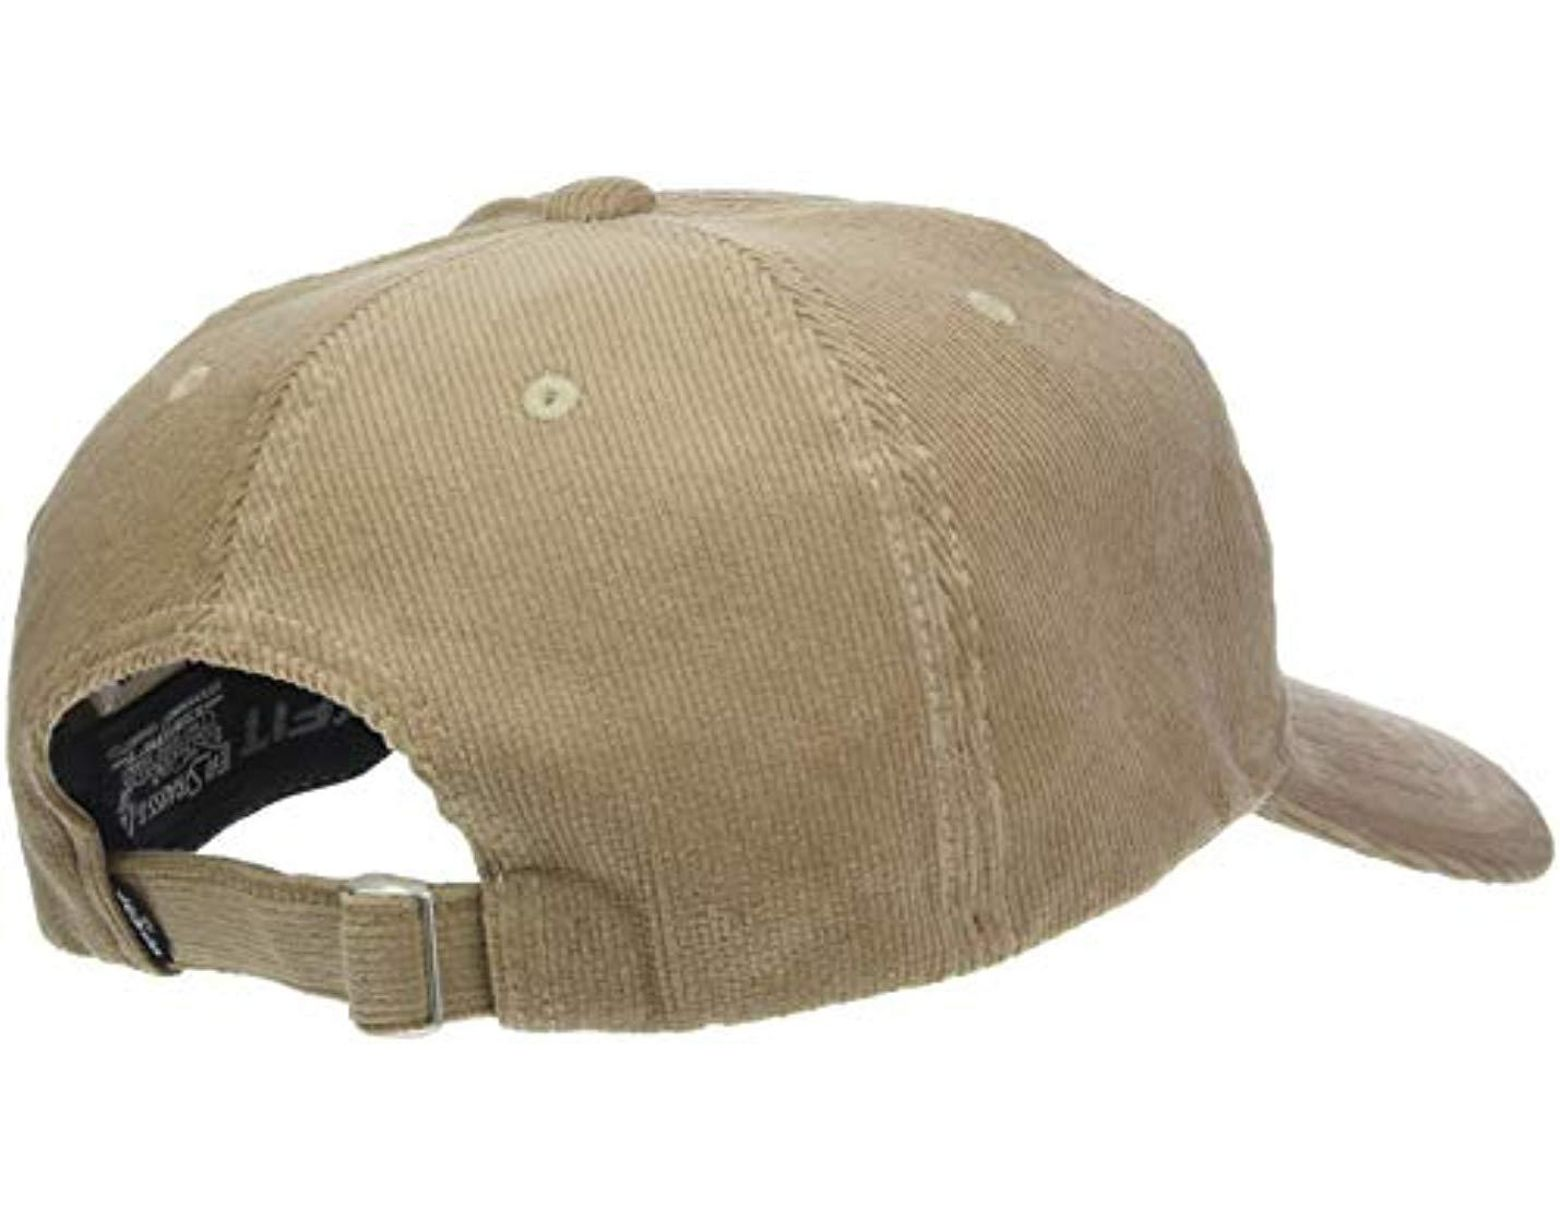 competitive price 0b2ef 614c8 Levi s Cord Batwing Hat Baseball Cap in Natural for Men - Lyst